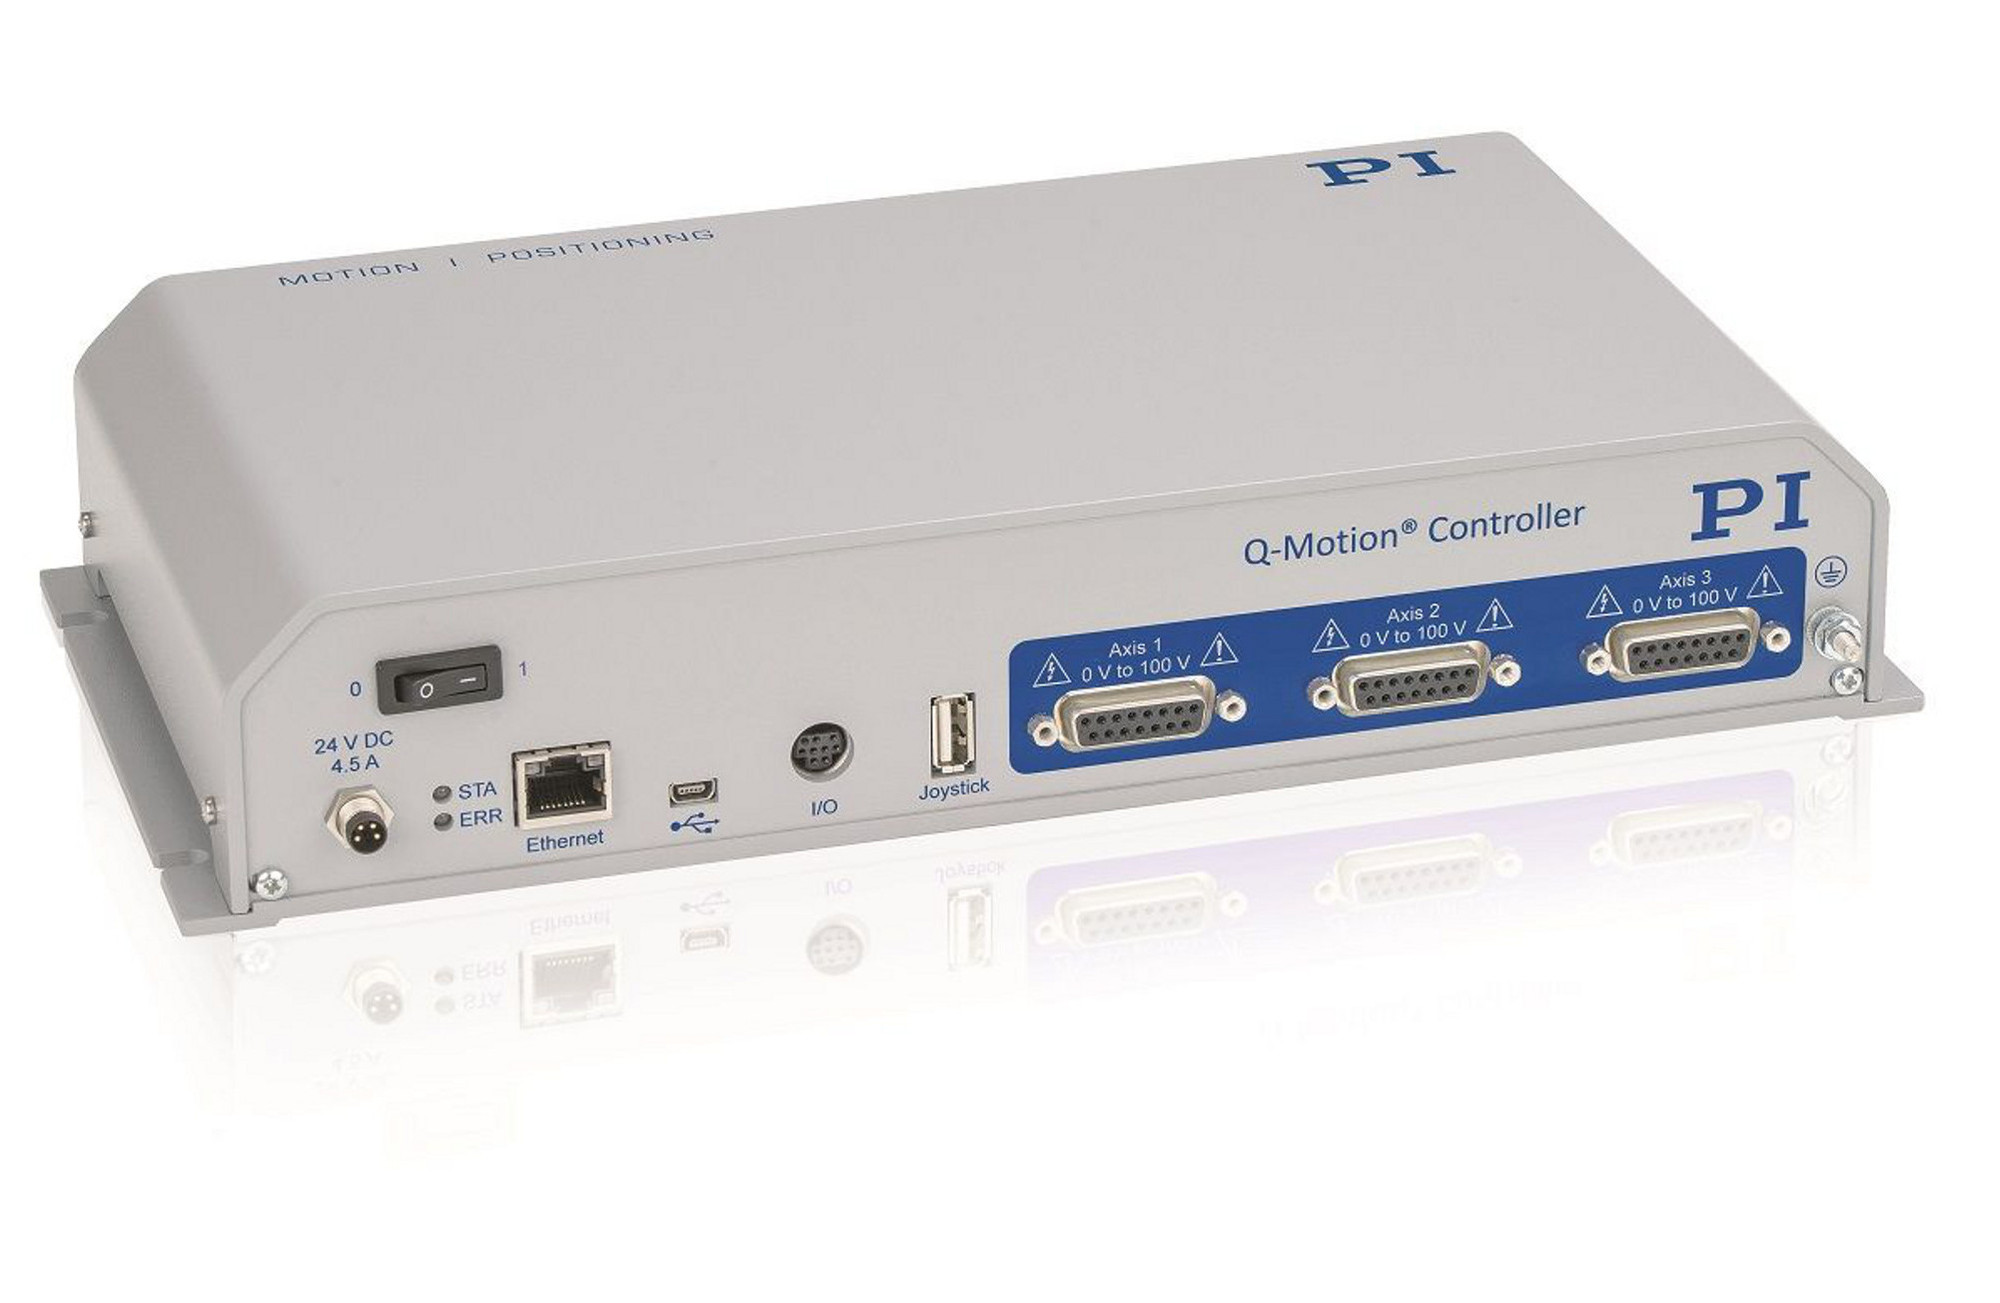 E 8733qtu Q Motion Servo Controller 3 Axes Voice Data Combination Module With Ethernet Switch